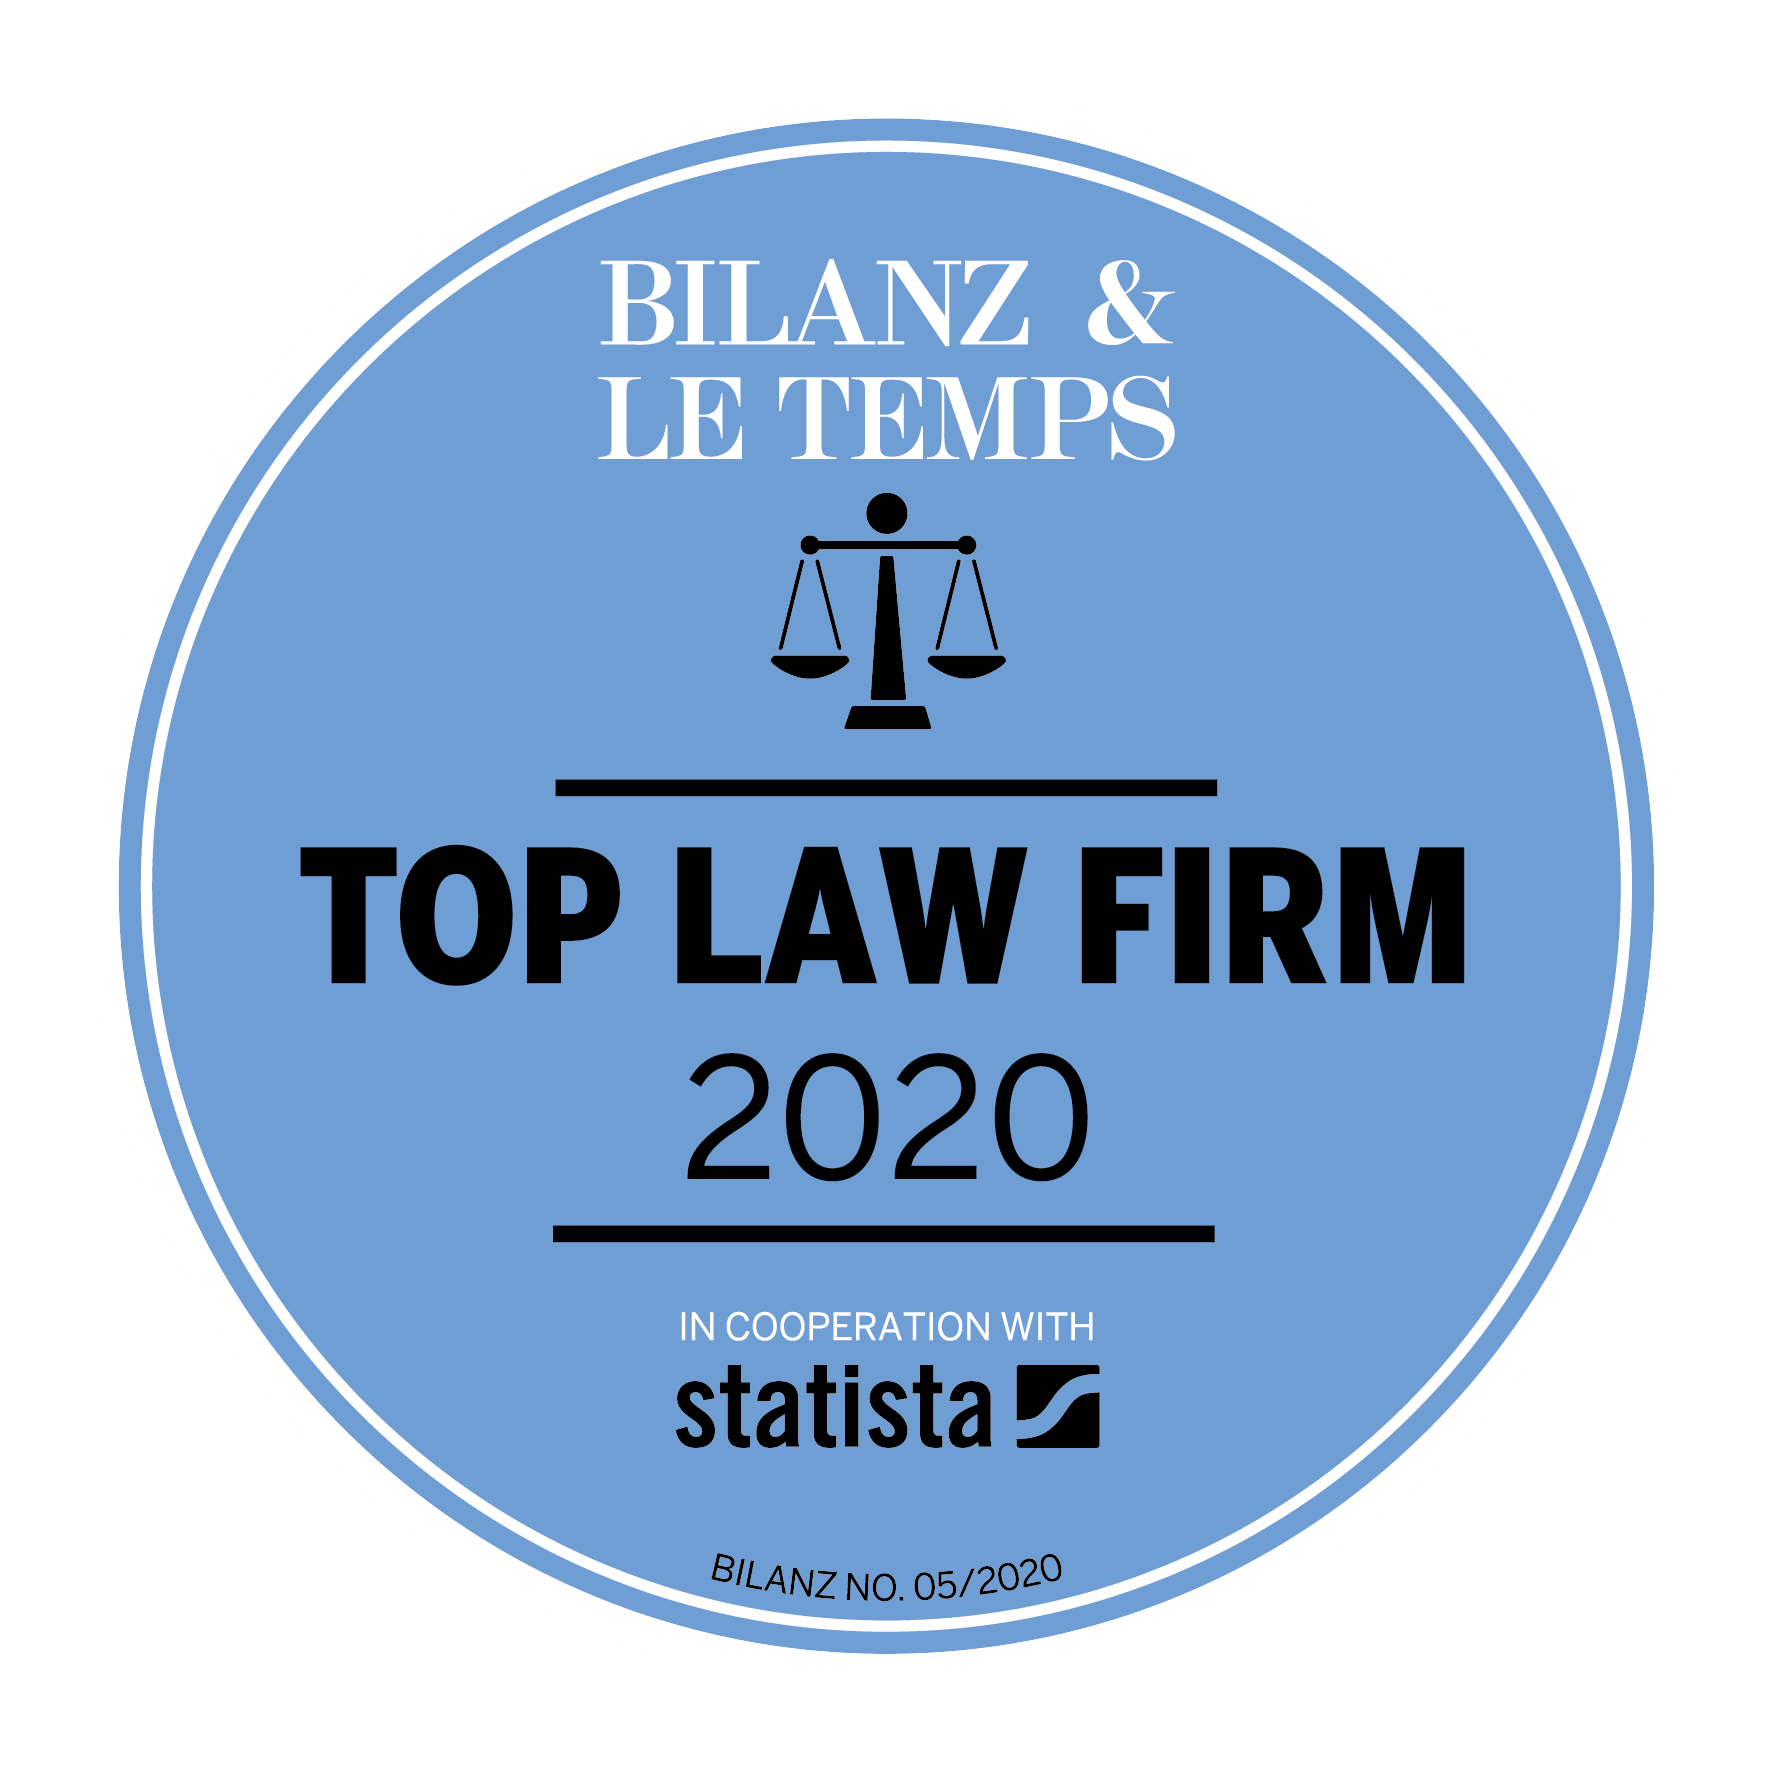 Top Law Firm 2020